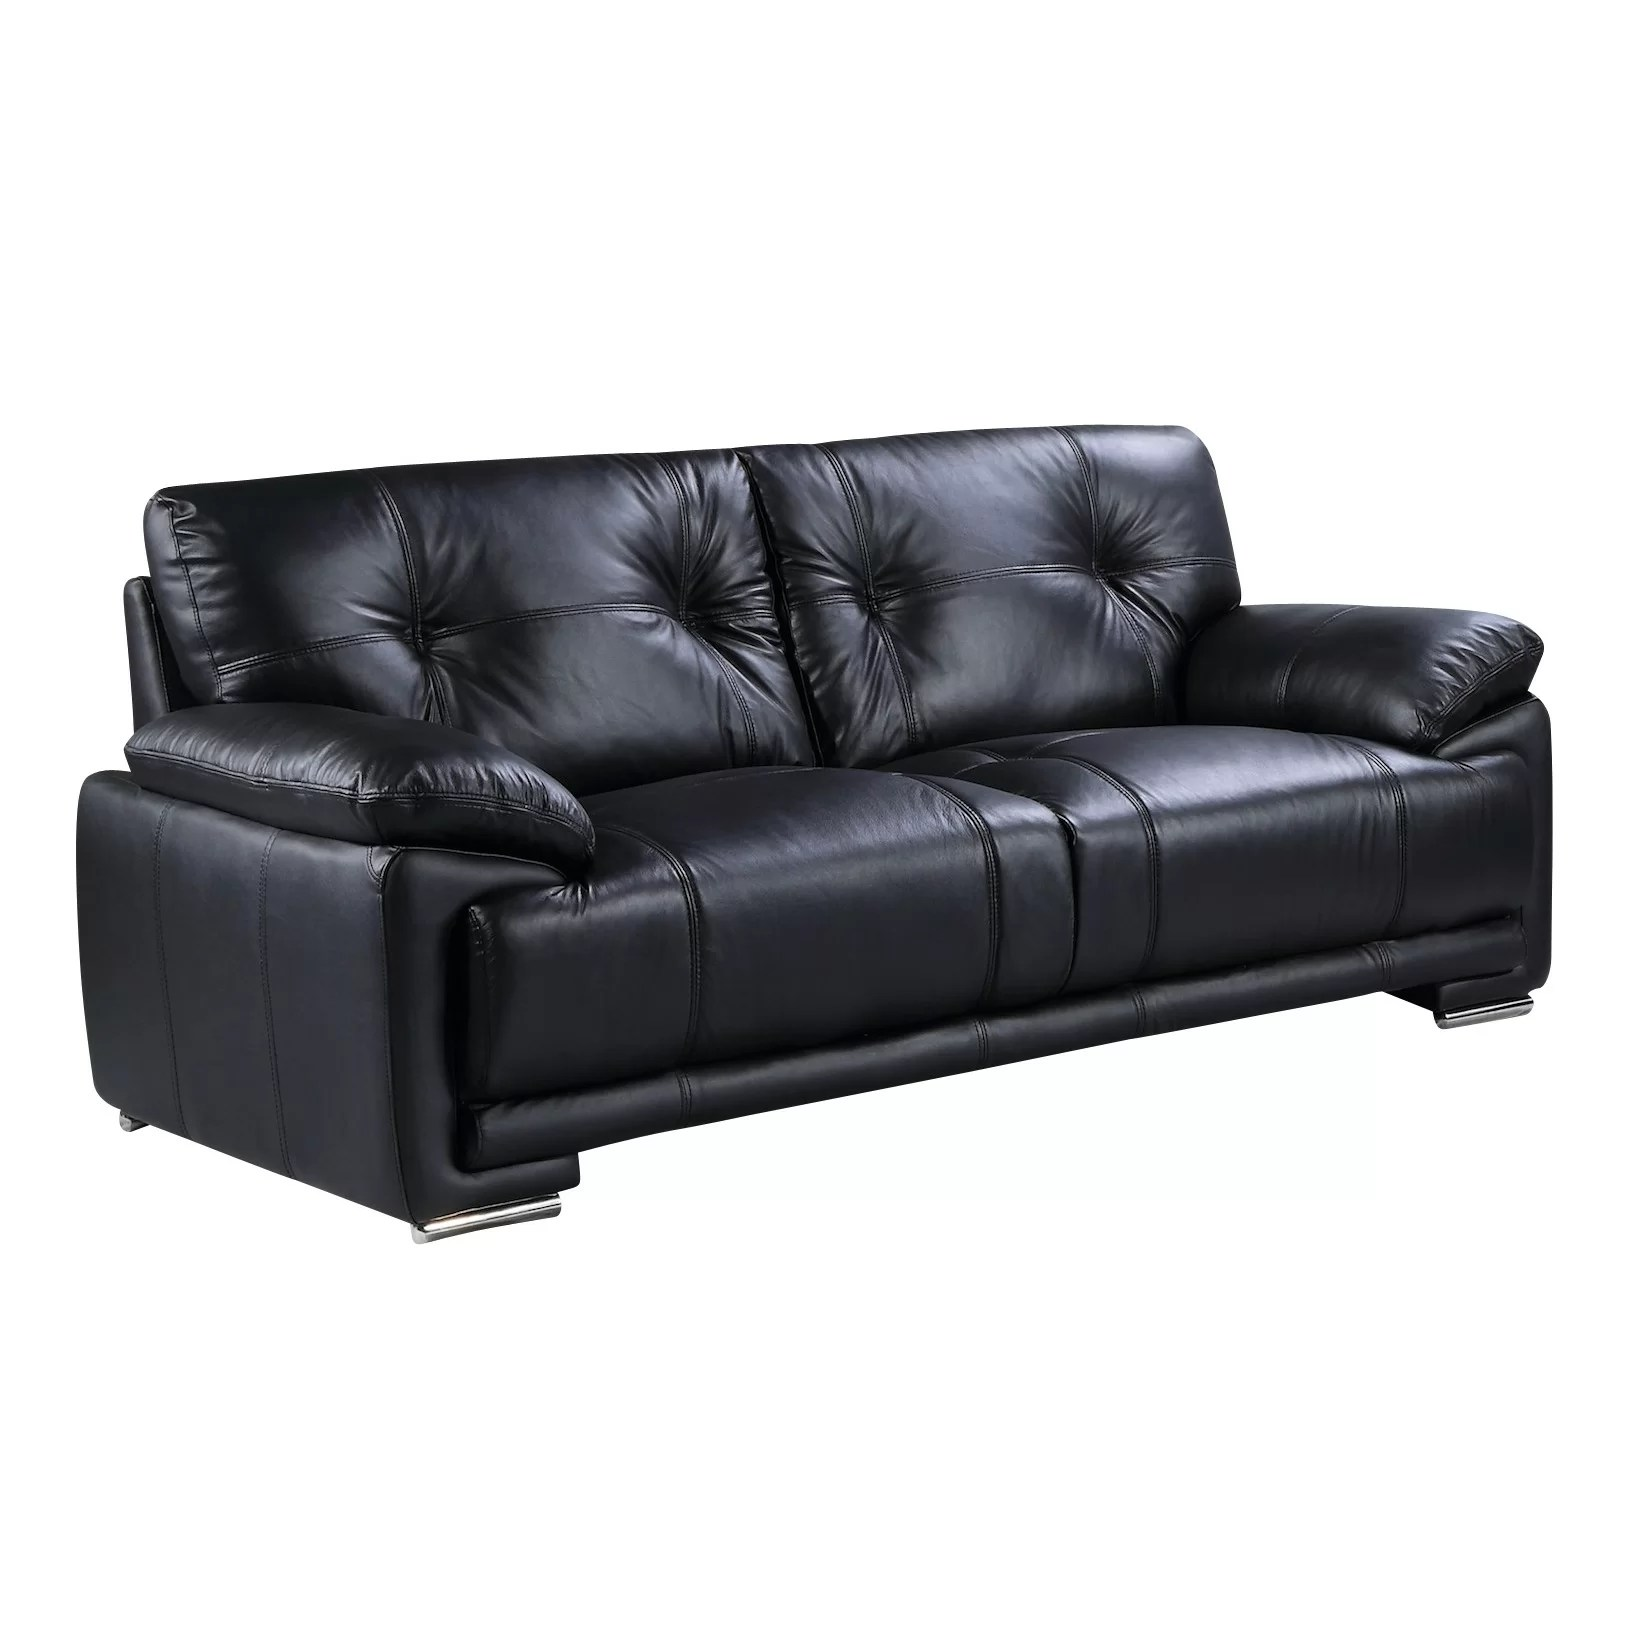 genuine leather sofa uk homey design sets rose bay furniture lucy 3 seater